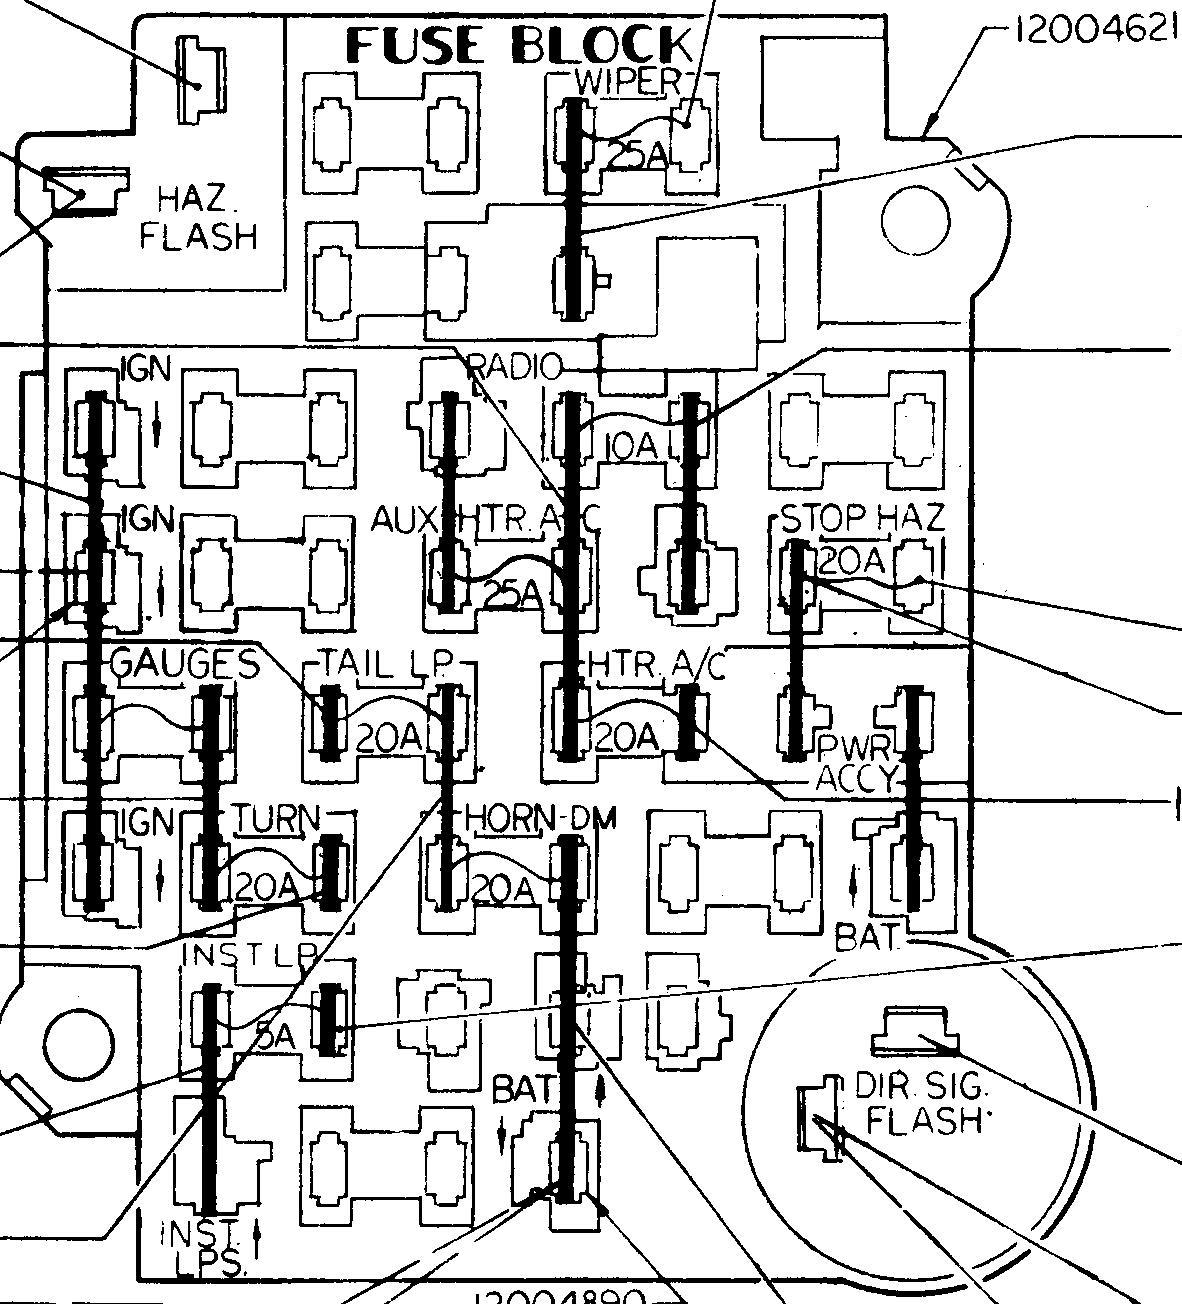 hight resolution of 2002 chevy luv fuse box wiring diagrams 1986 chevy c10 fuse box 2002 chevy luv fuse box